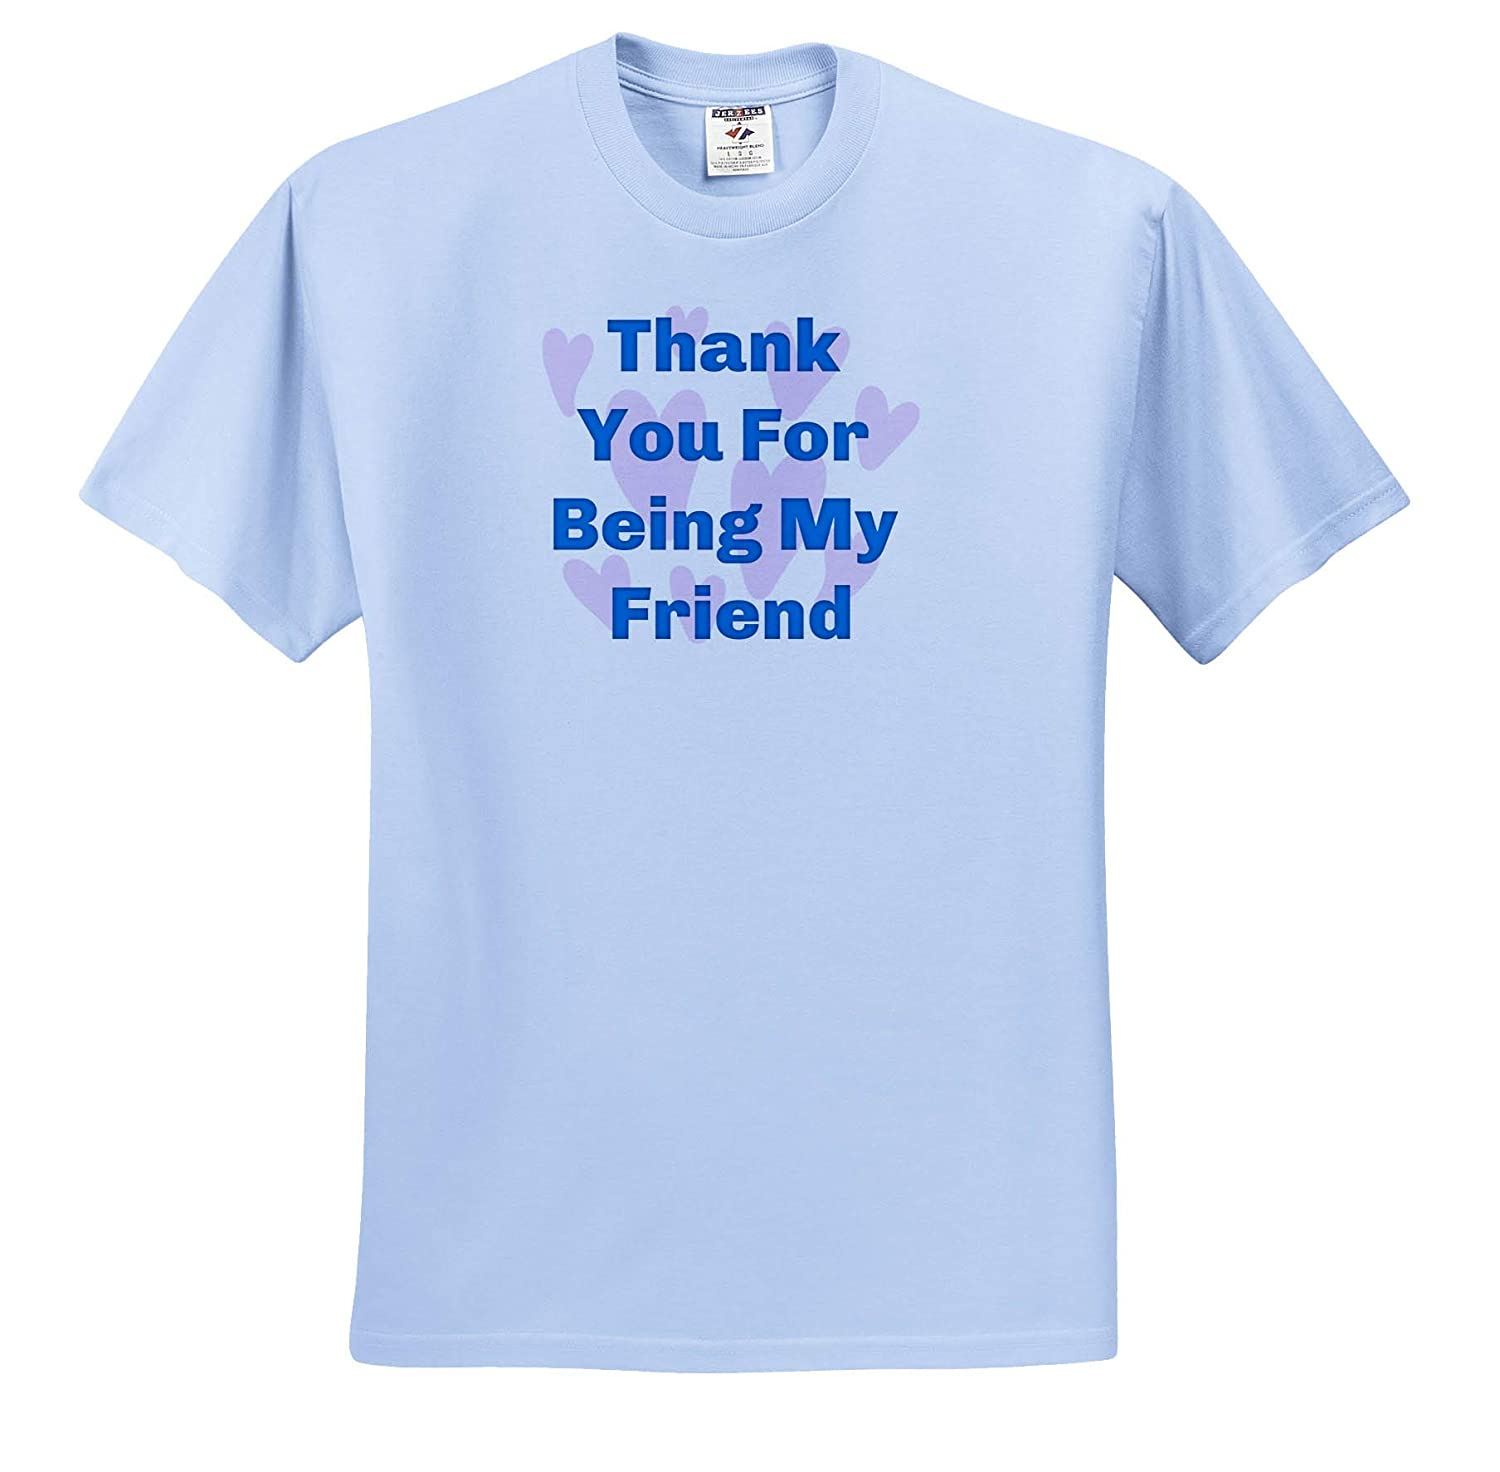 Image of Thank You for Being My Friend ts/_317450 Adult T-Shirt XL 3dRose Carrie Merchant Image Quote